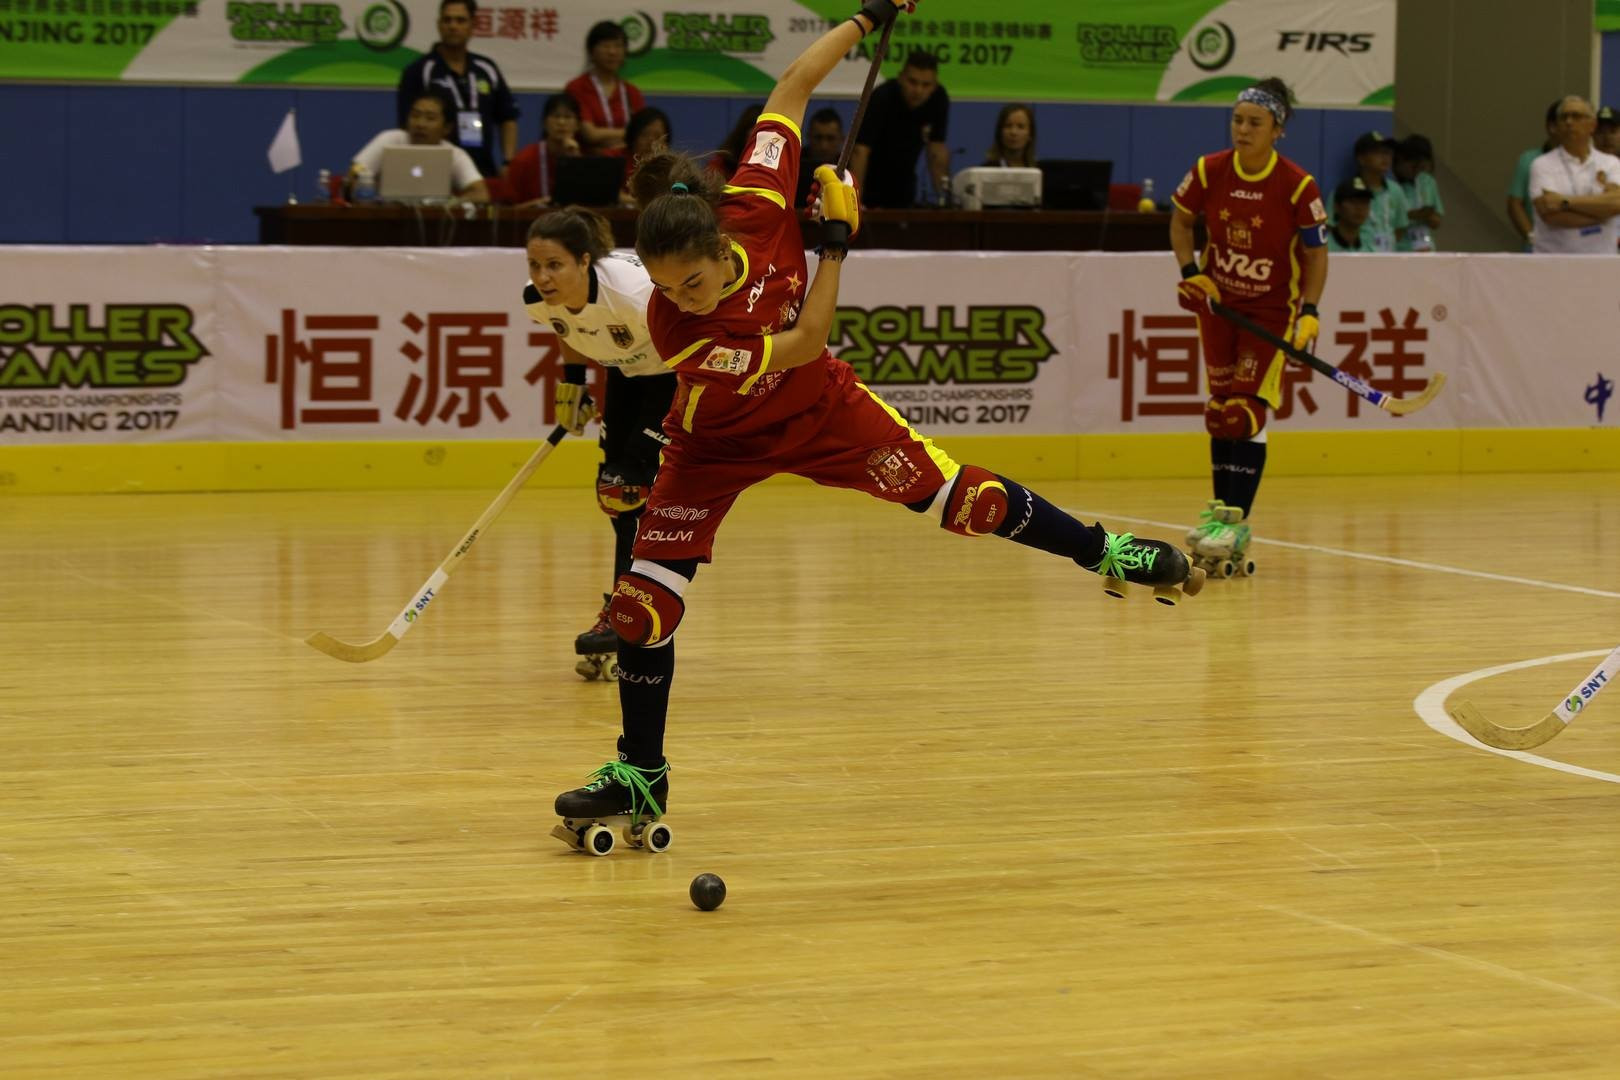 Finalists confirmed for rink hockey competitions at World Roller Games